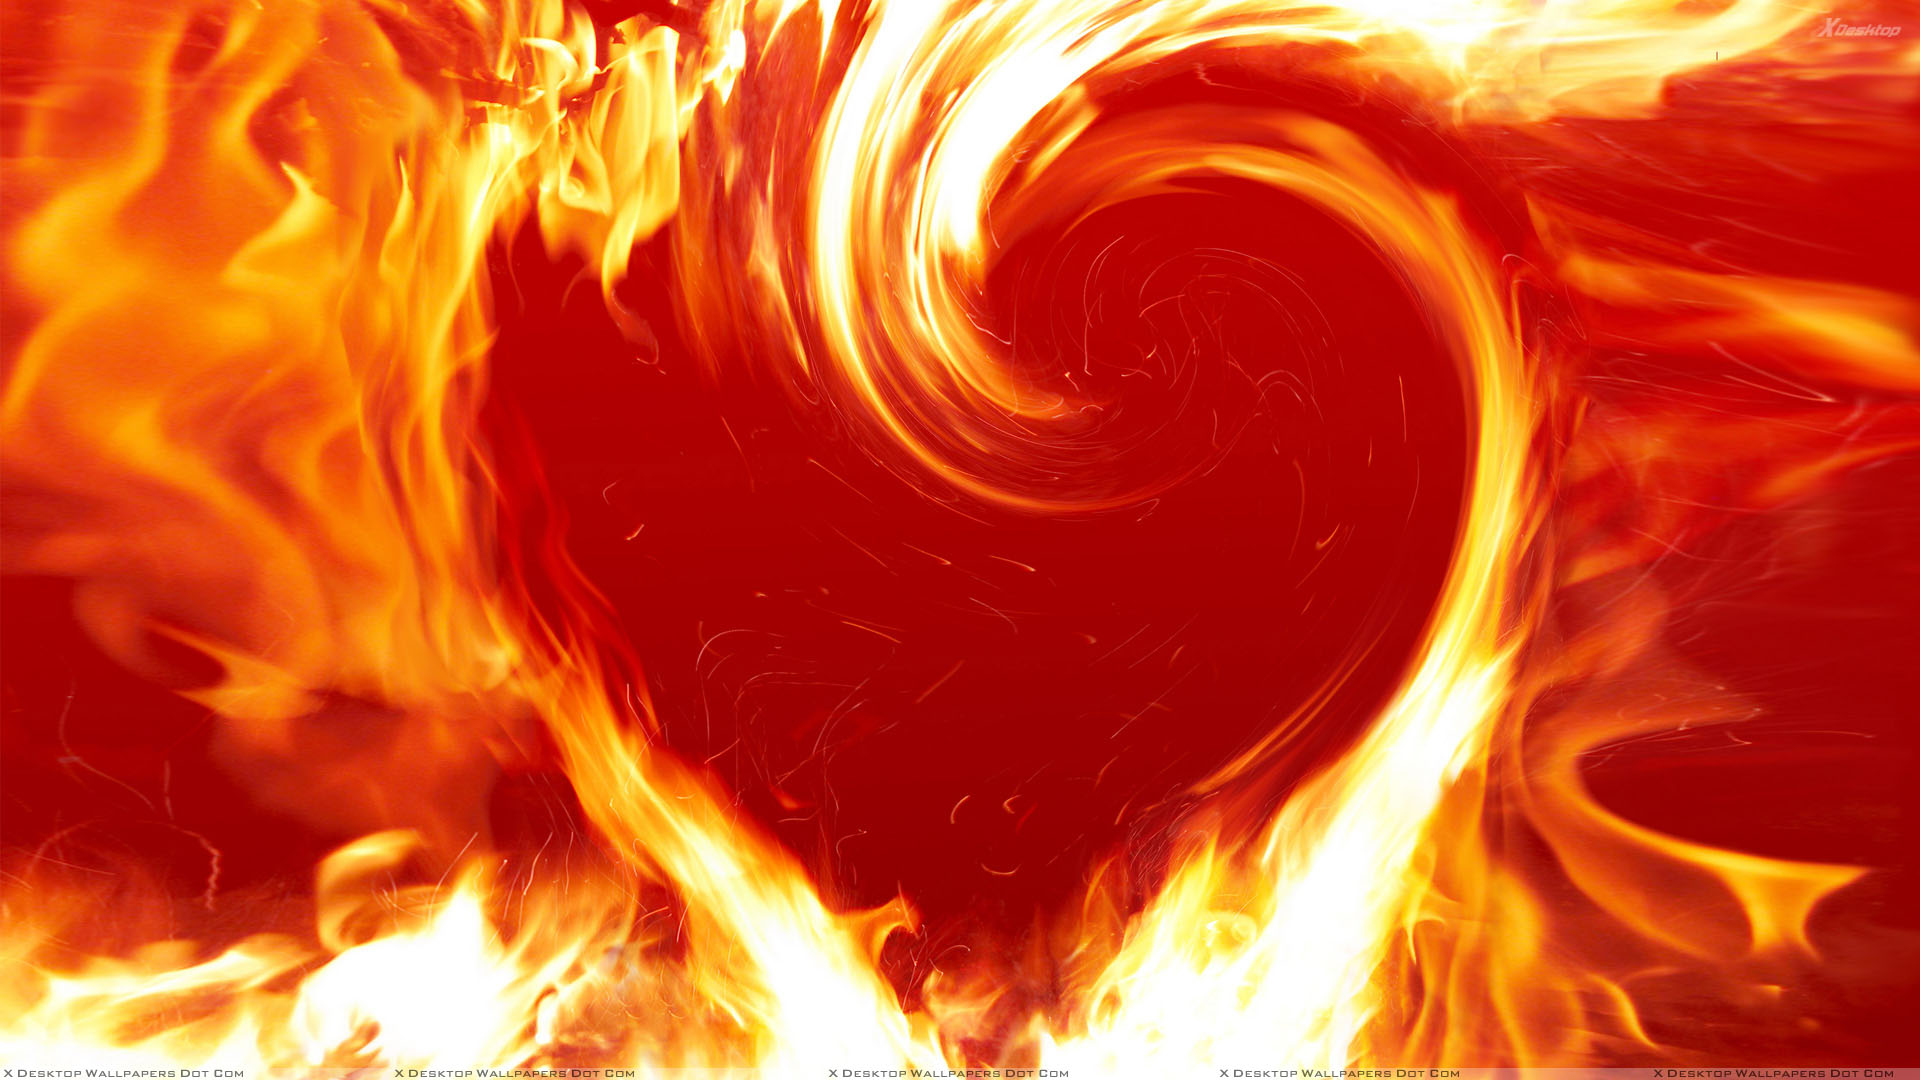 Desire Quotes About Fire And Desire QuotesGram